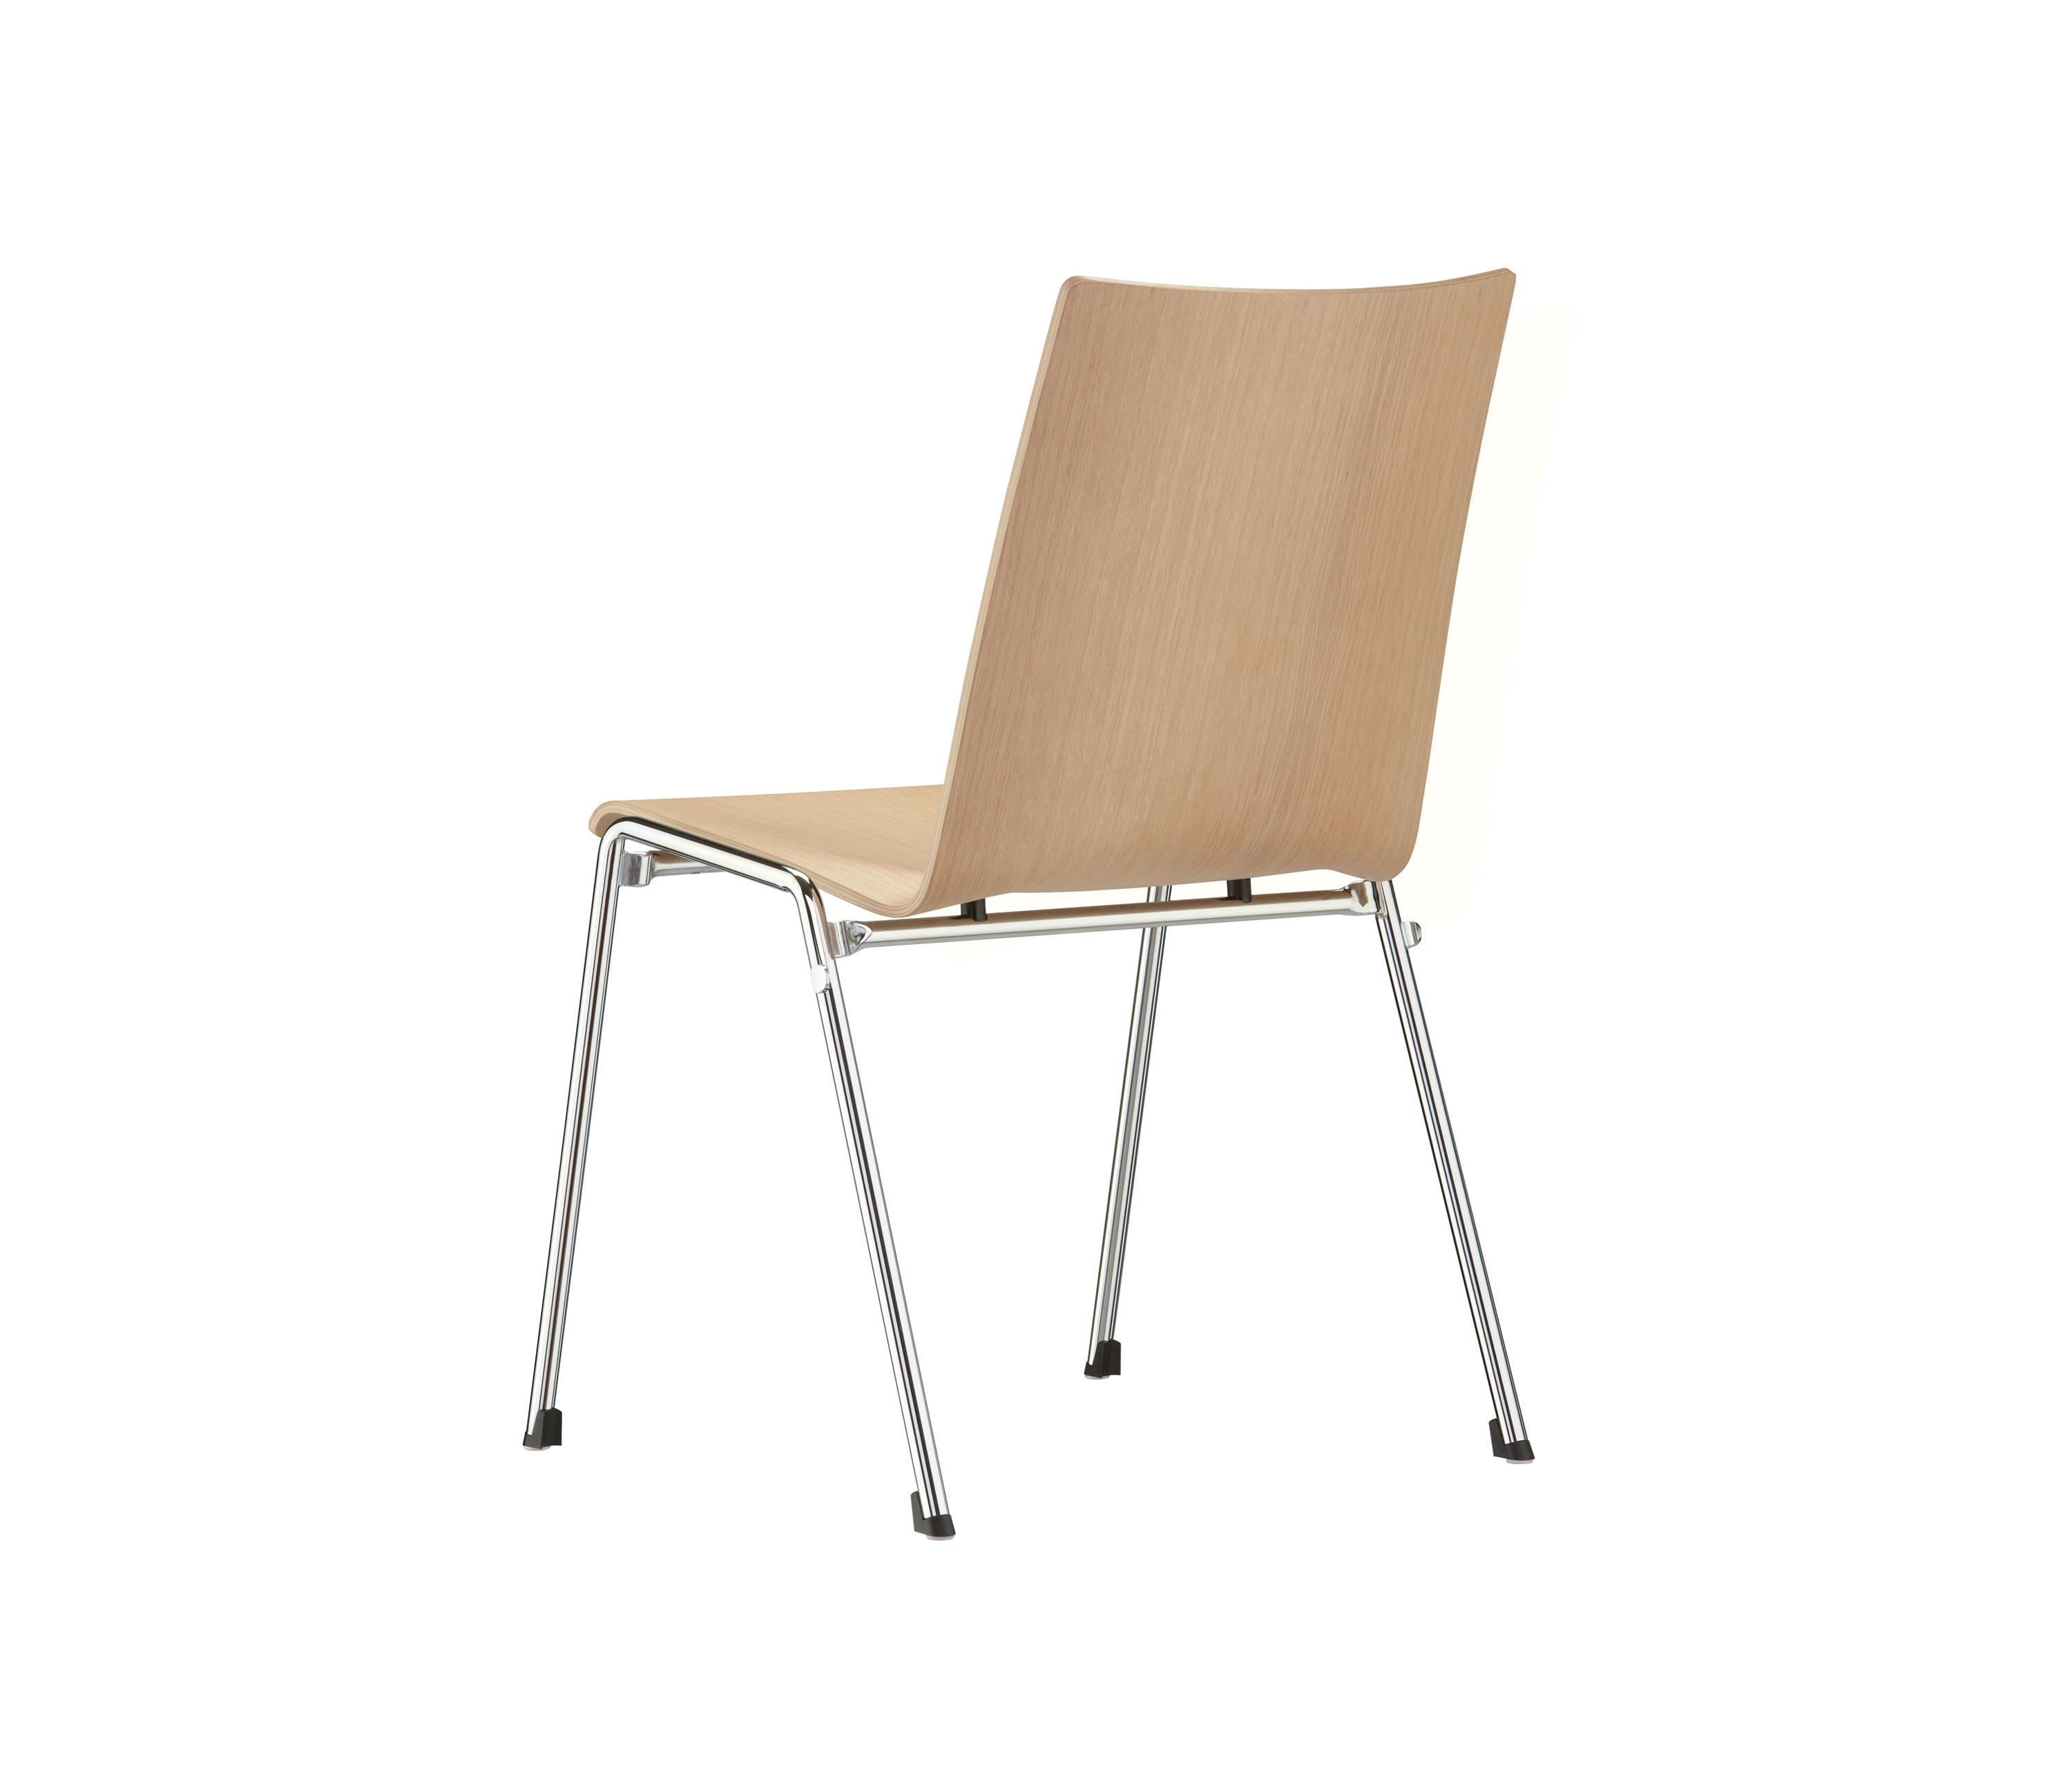 First Place 4504 By Brunner | Multipurpose Chairs ...